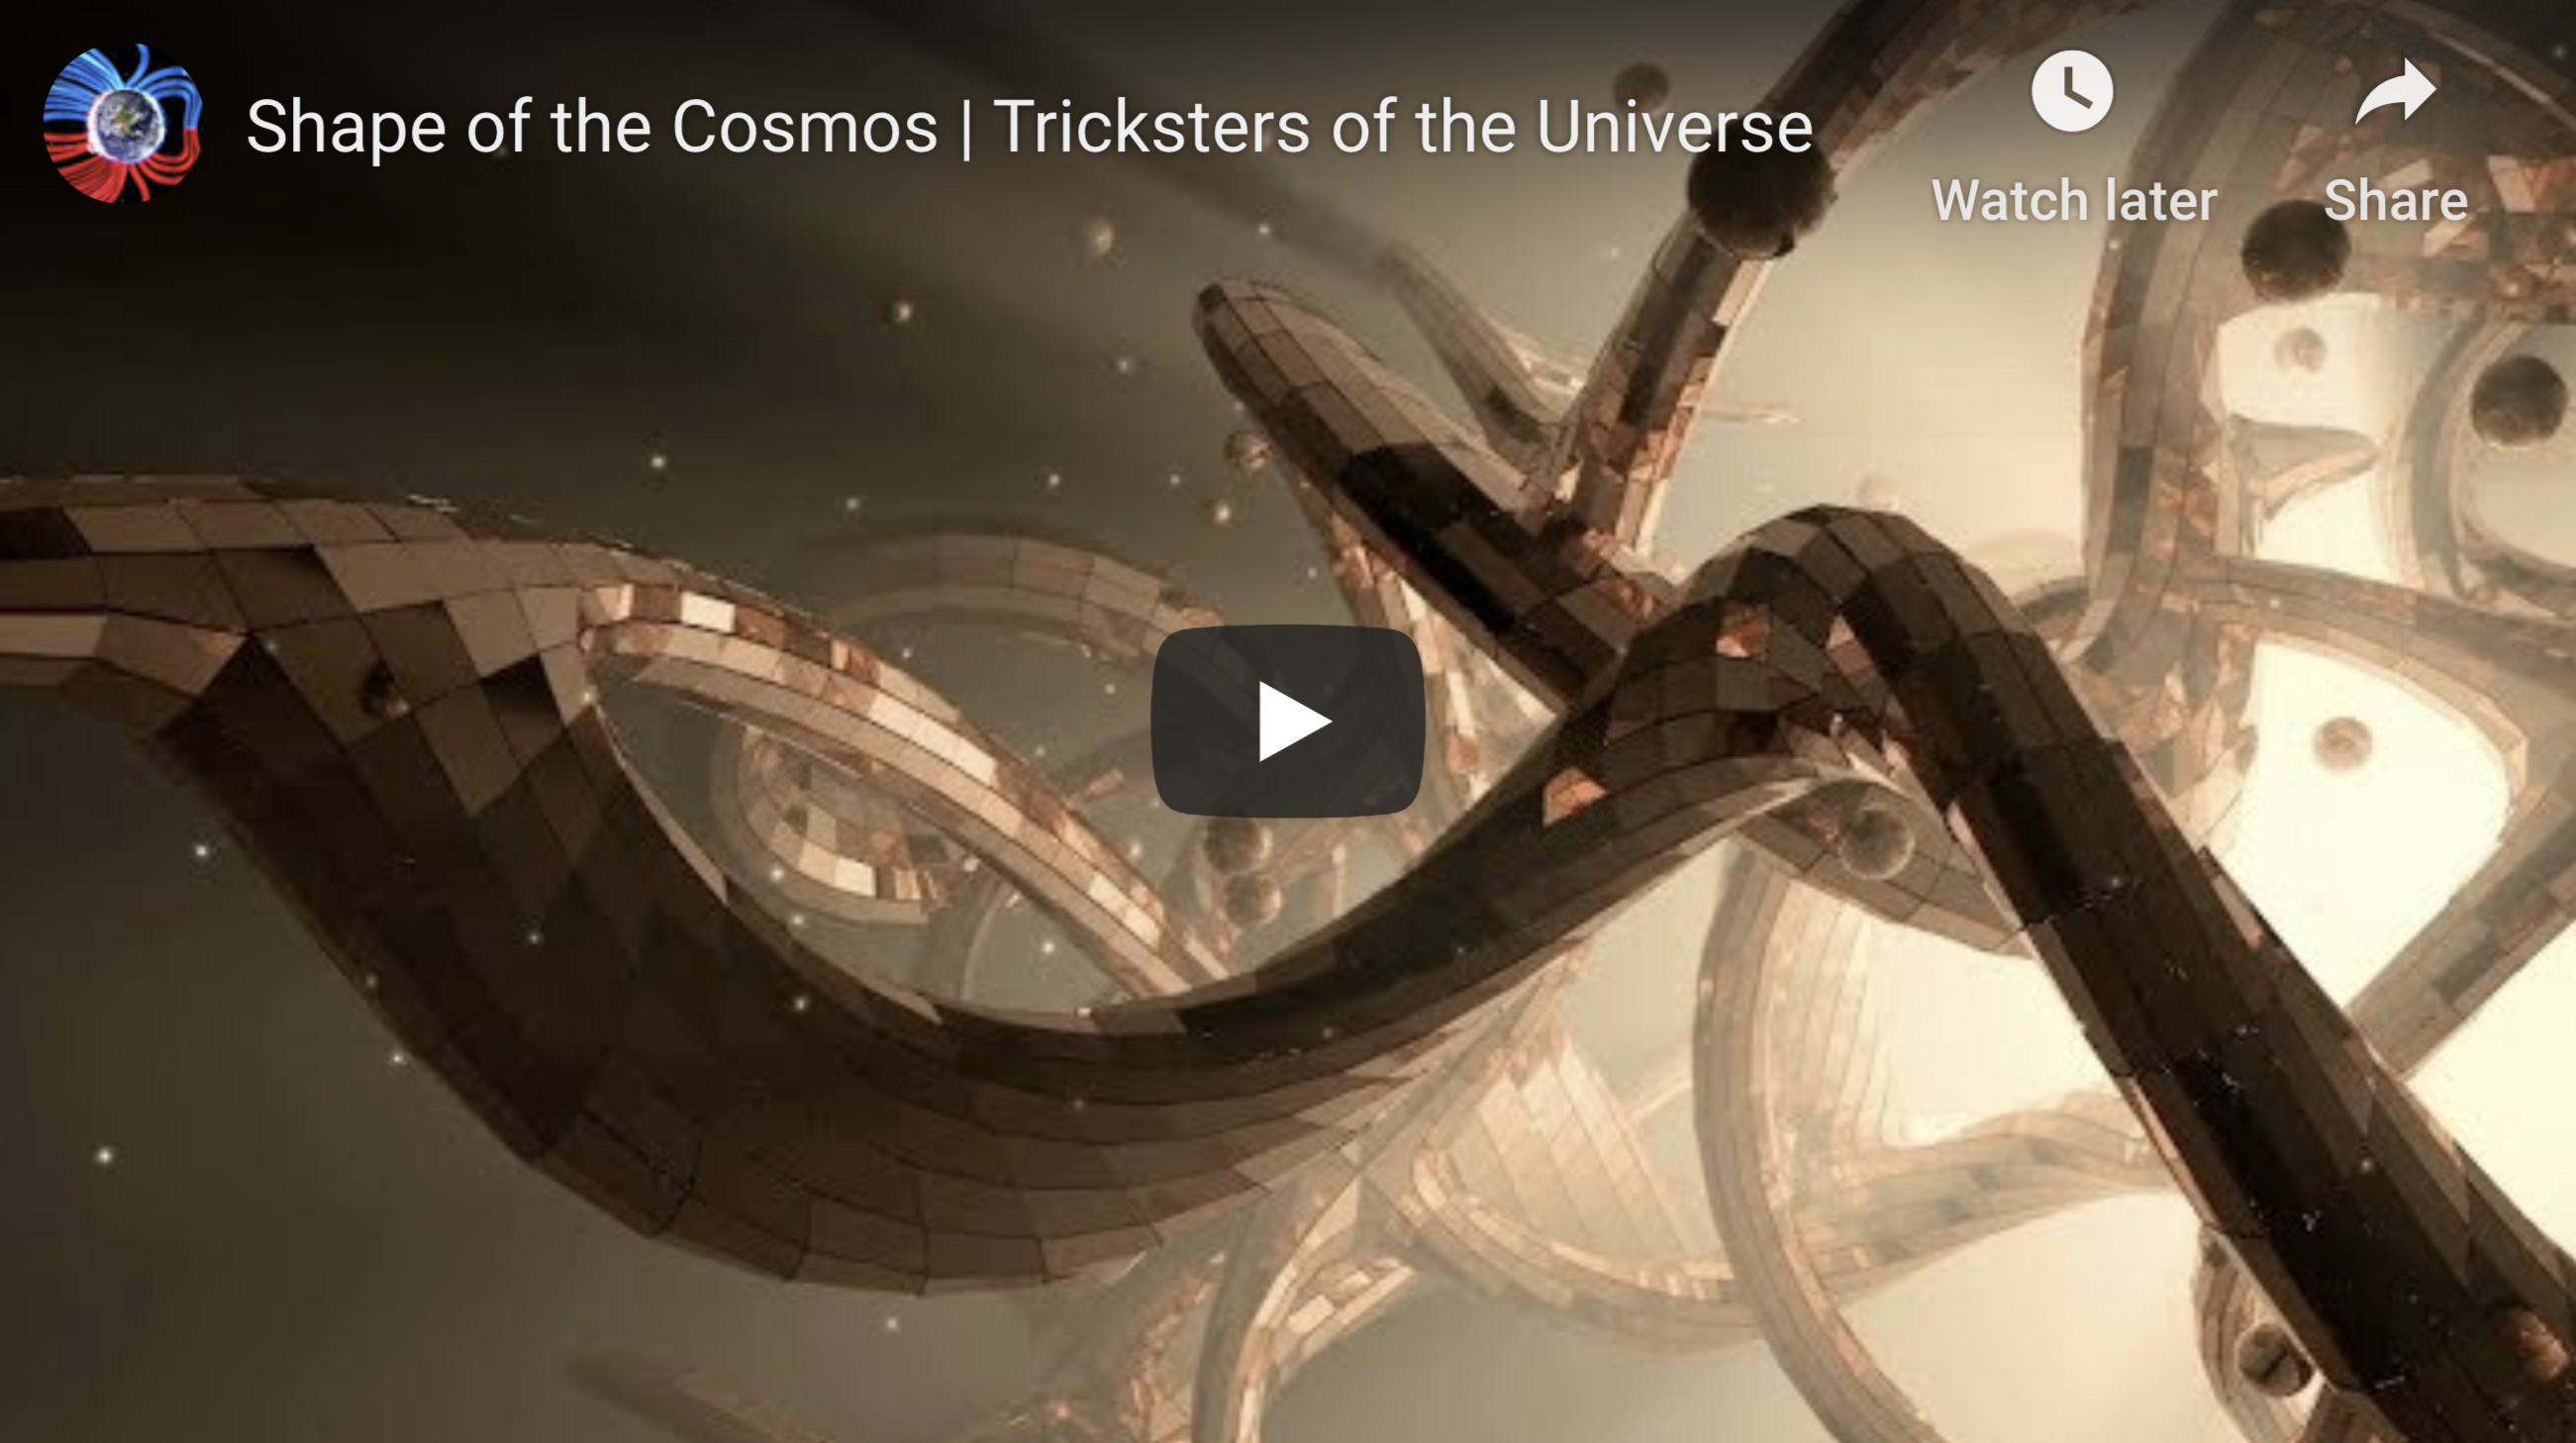 Shape of the Cosmos Tricksters of the Universe 4 19 2020